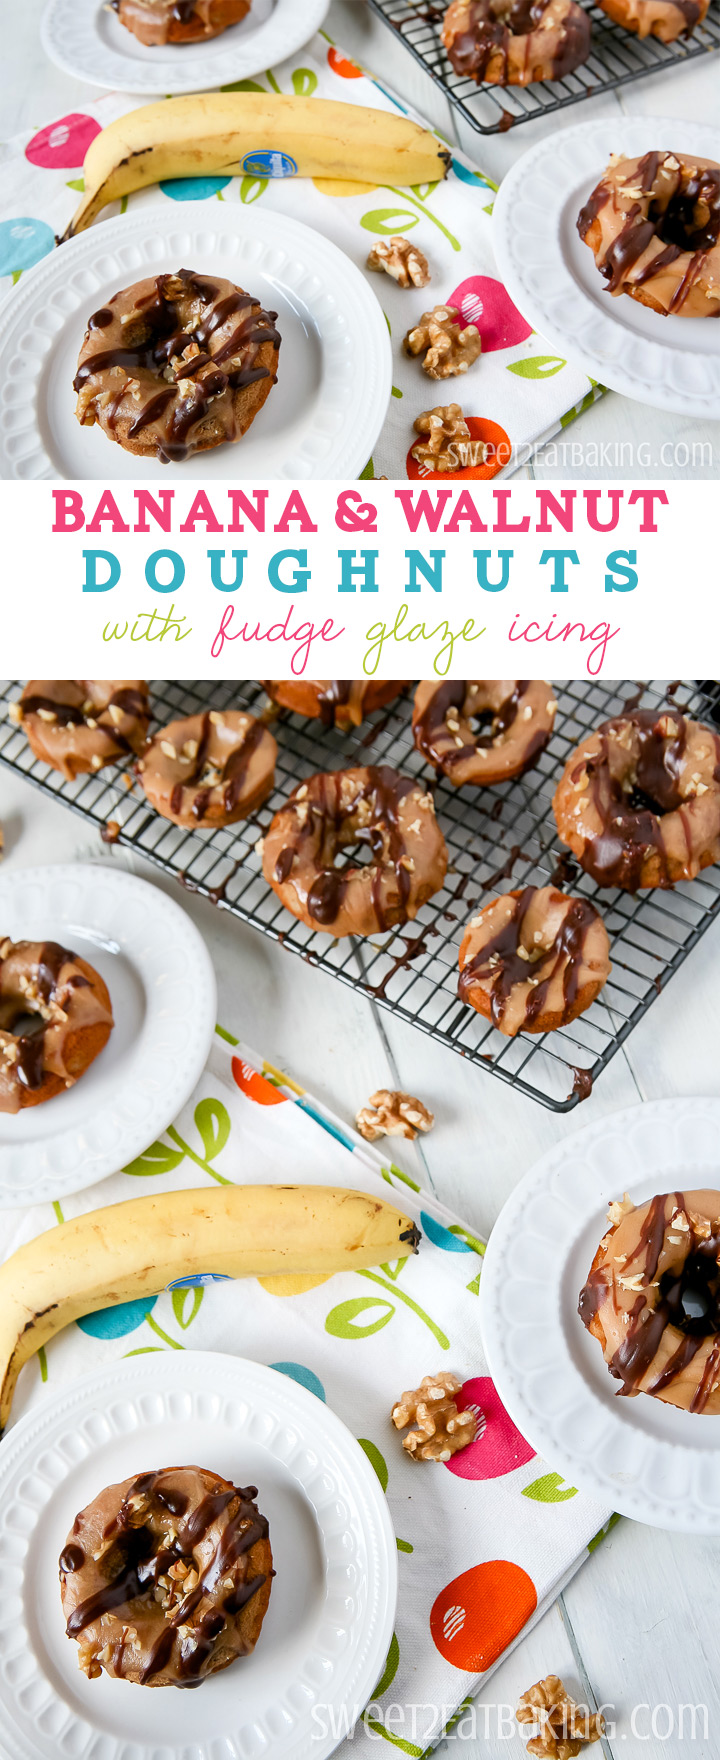 Banana & Walnut Baked Doughnuts with Fudge Glaze Icing Recipe by Sweet2EatBaking.com